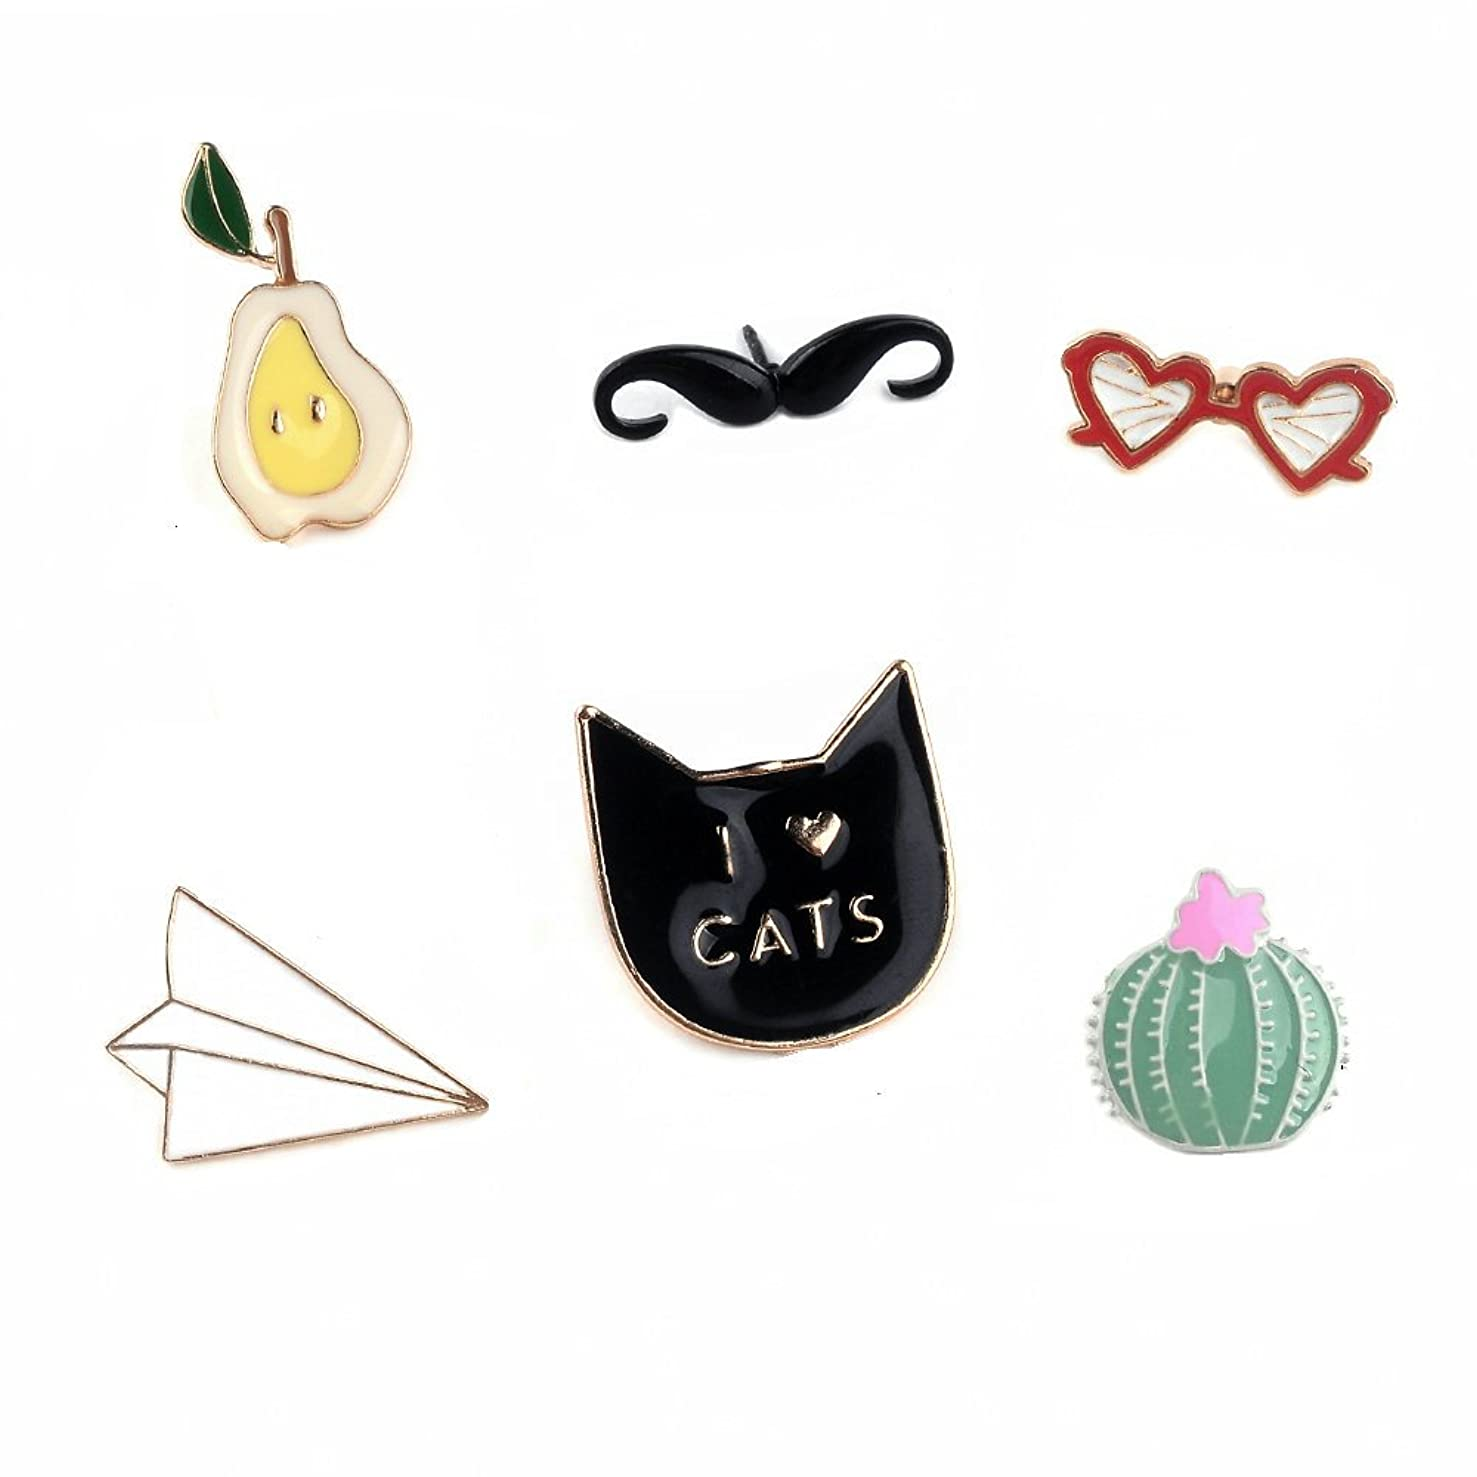 Herinos Cartoon Badges 6Pcs Lovely Lapel Enamel Pins Set Christmas Brooch Pear Beard Eyeglasses Origami Cat Cactus